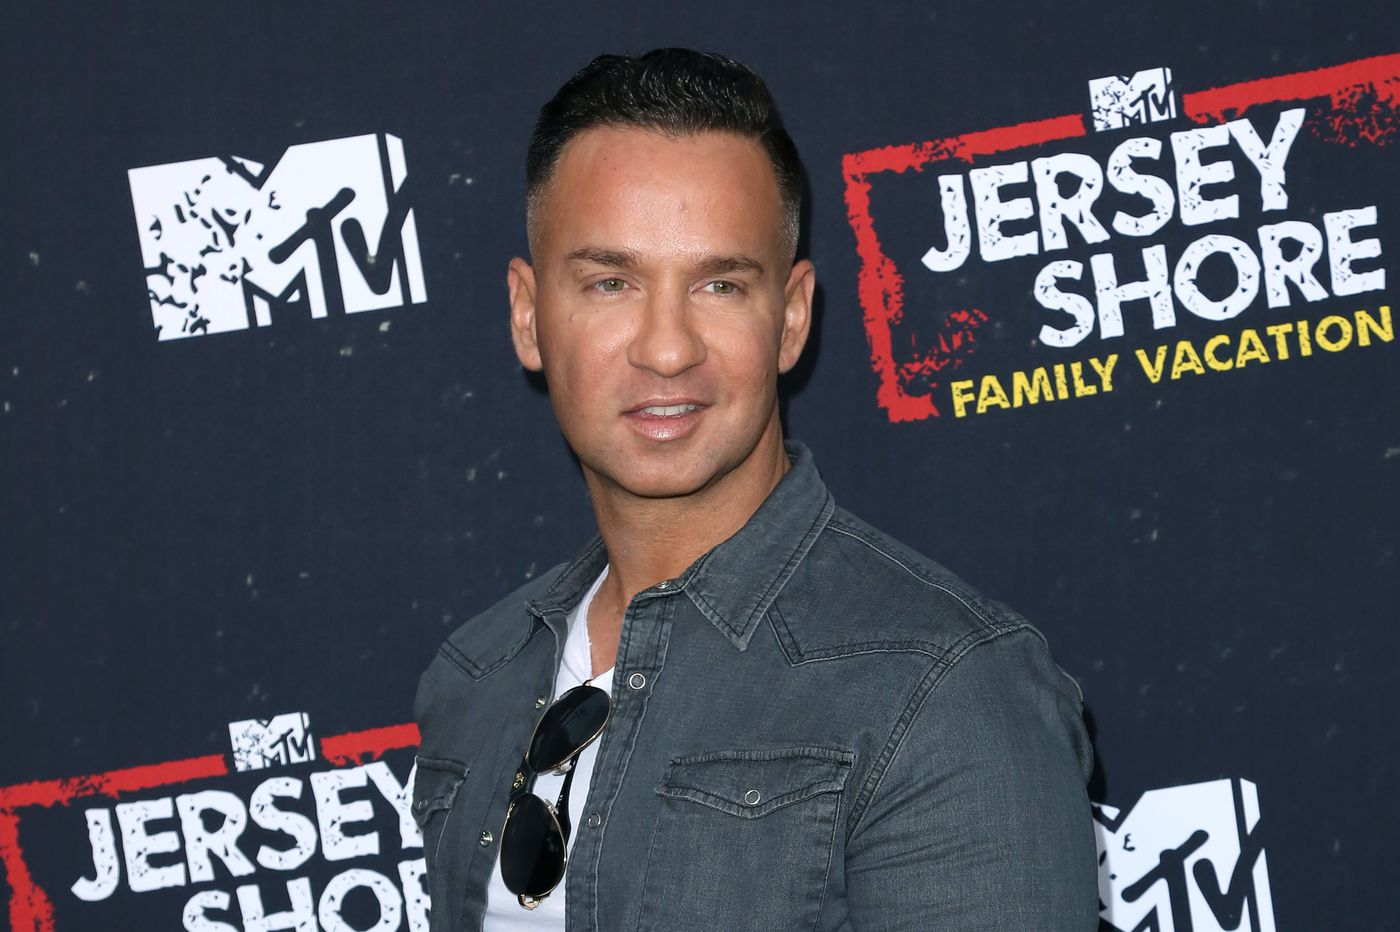 'Jersey Shore' reality star Mike 'The Situation' Sorrentino released from federal prison